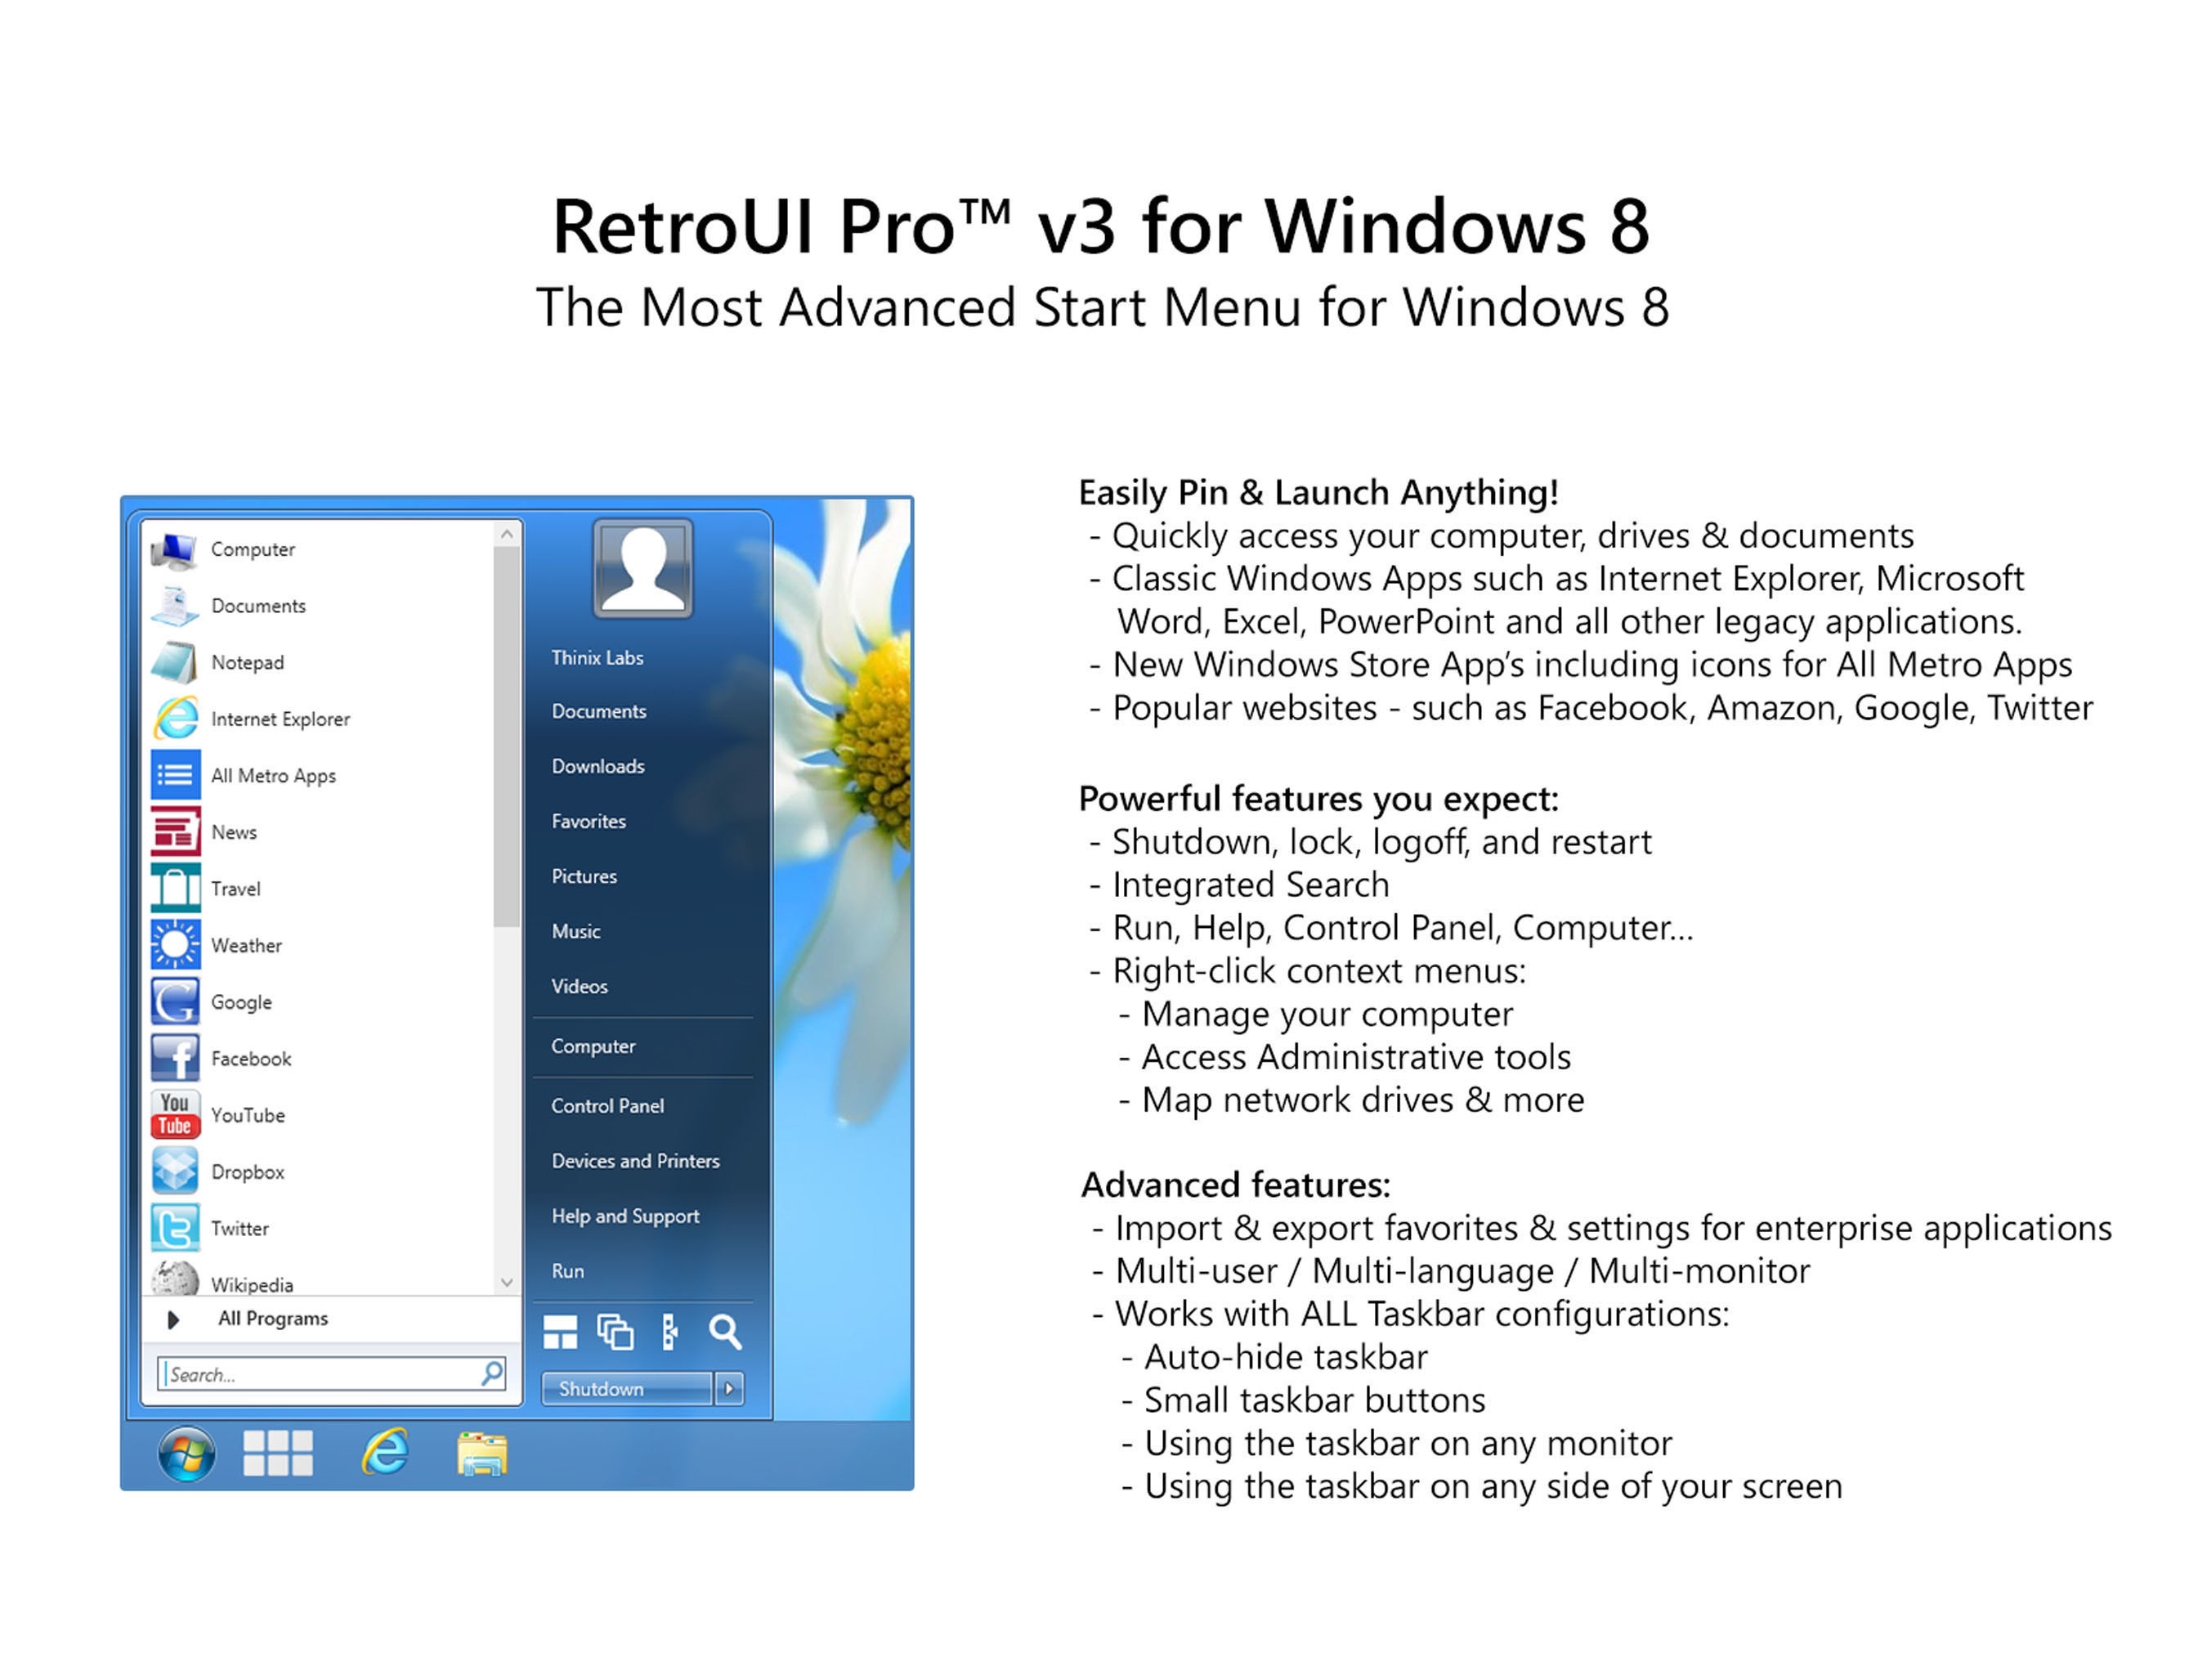 Thinix Announces RetroUI Pro 3: Brings the Efficiency and Simplicity of Windows 7 to Windows 8 PCs